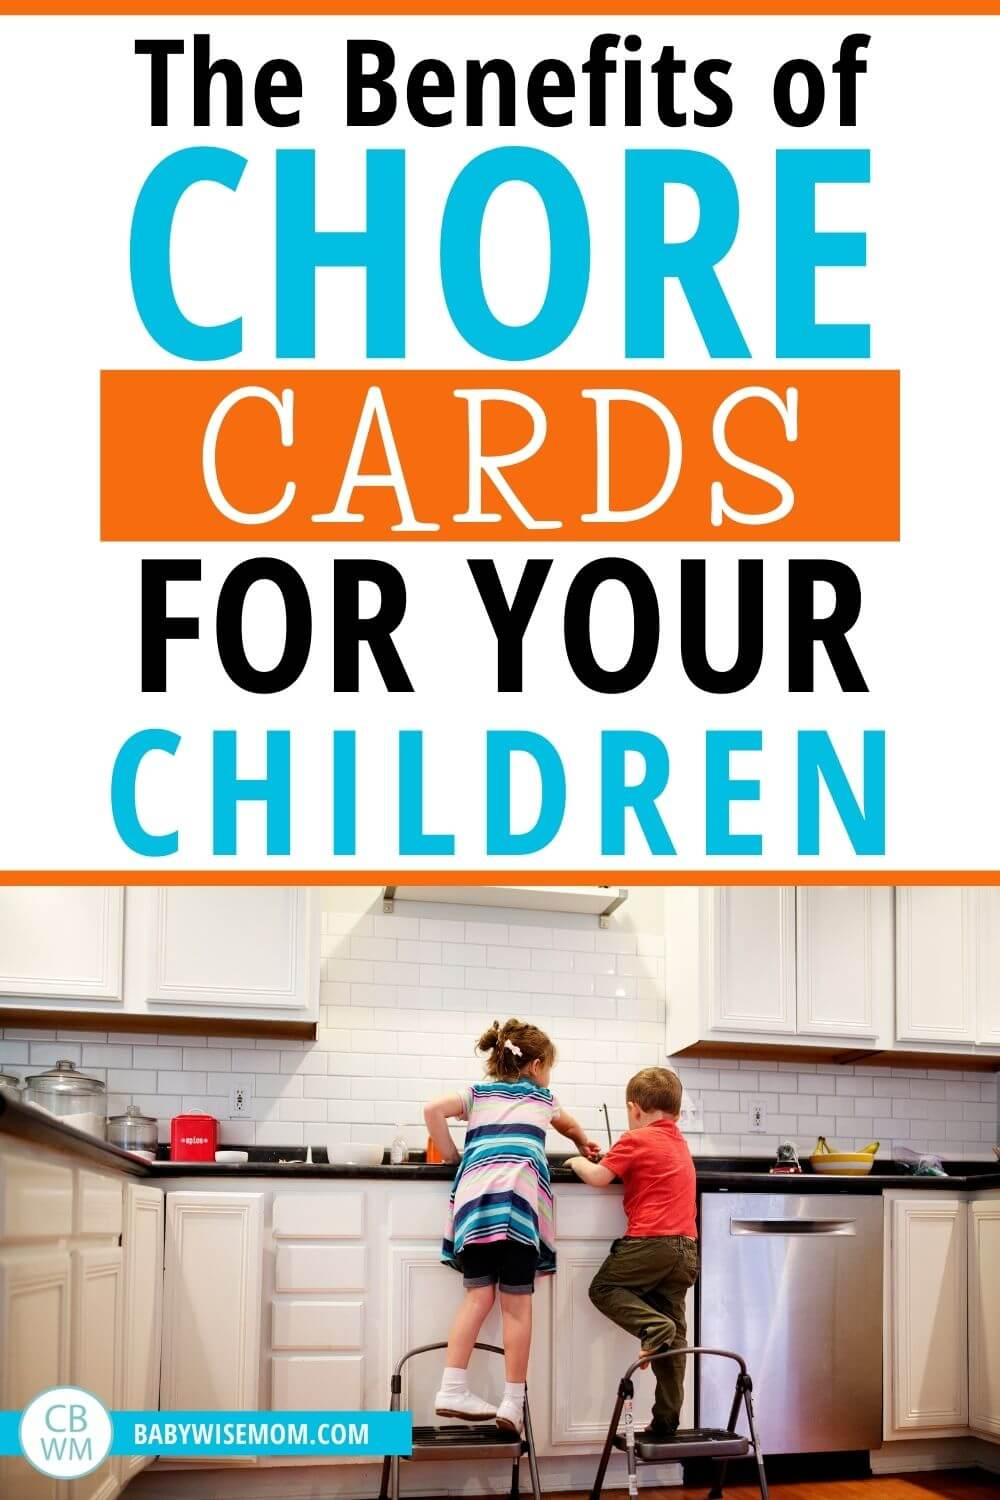 Benefits of chores cards for children